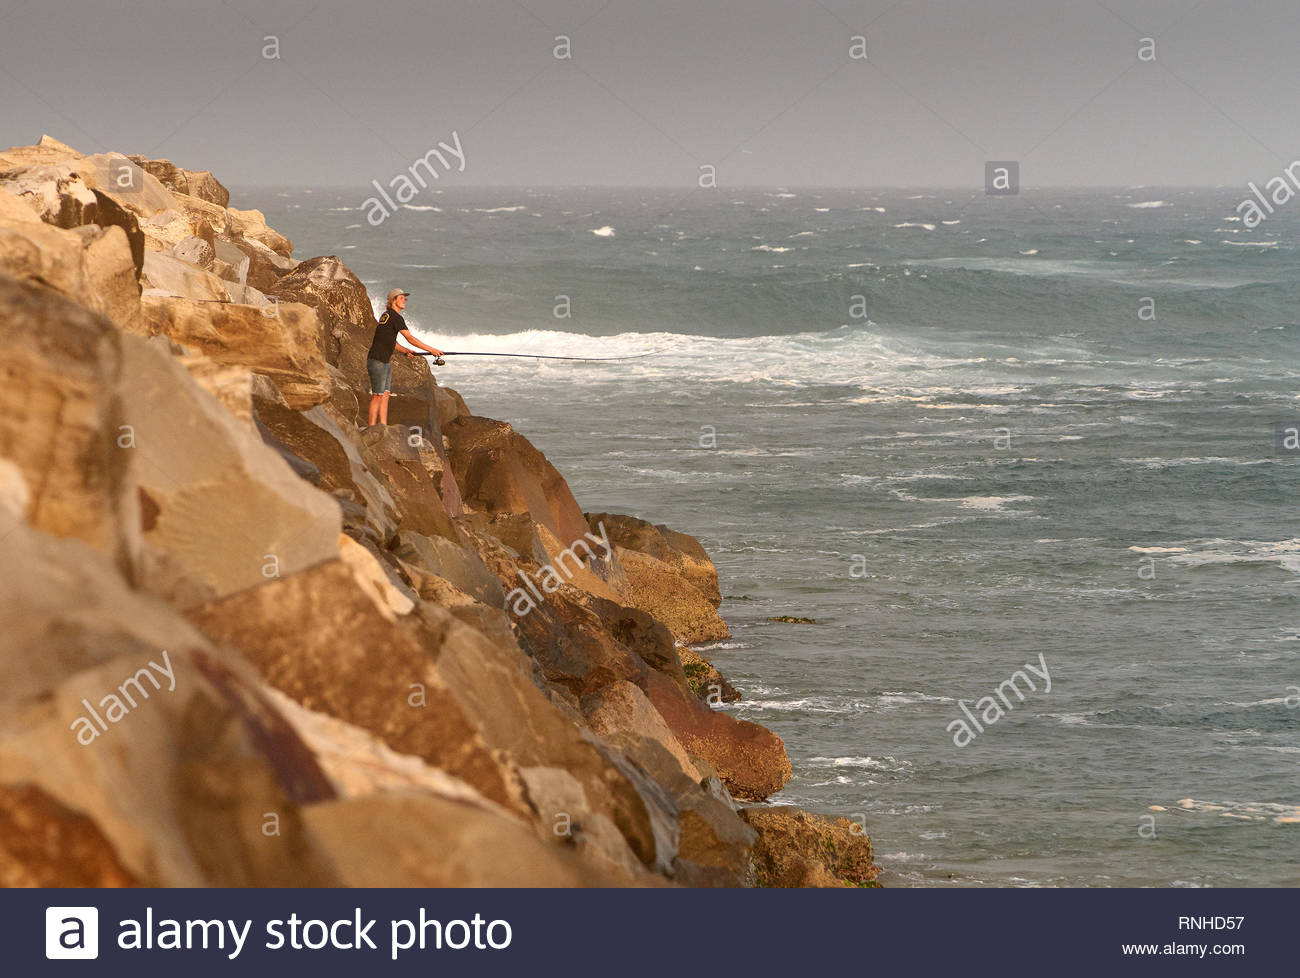 Yamba, NSW / Australia - February 12 2019: A young rock-fisherman, casting his line into the Pacific Ocean, from the large rocky breakwall he's on. - Stock Image